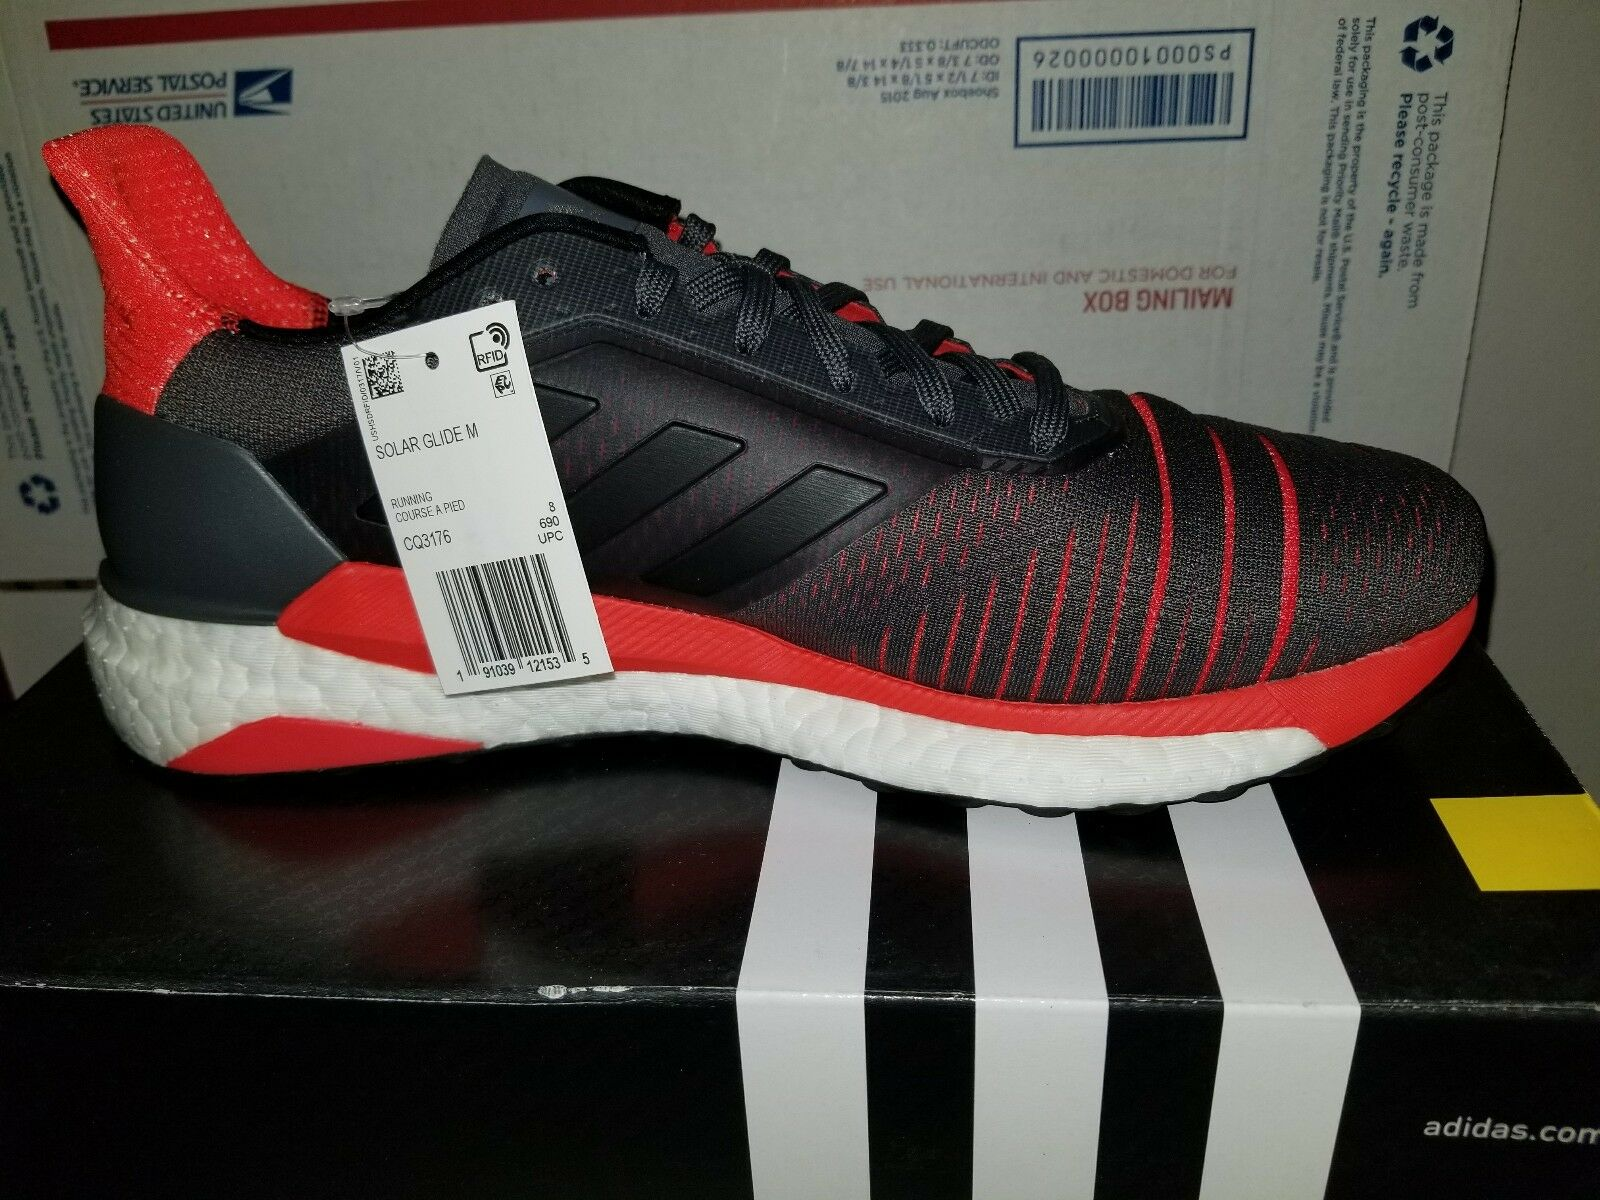 Adidas Men's Running Solar Glide M Boost Tennis shoes CQ3176 Size 9